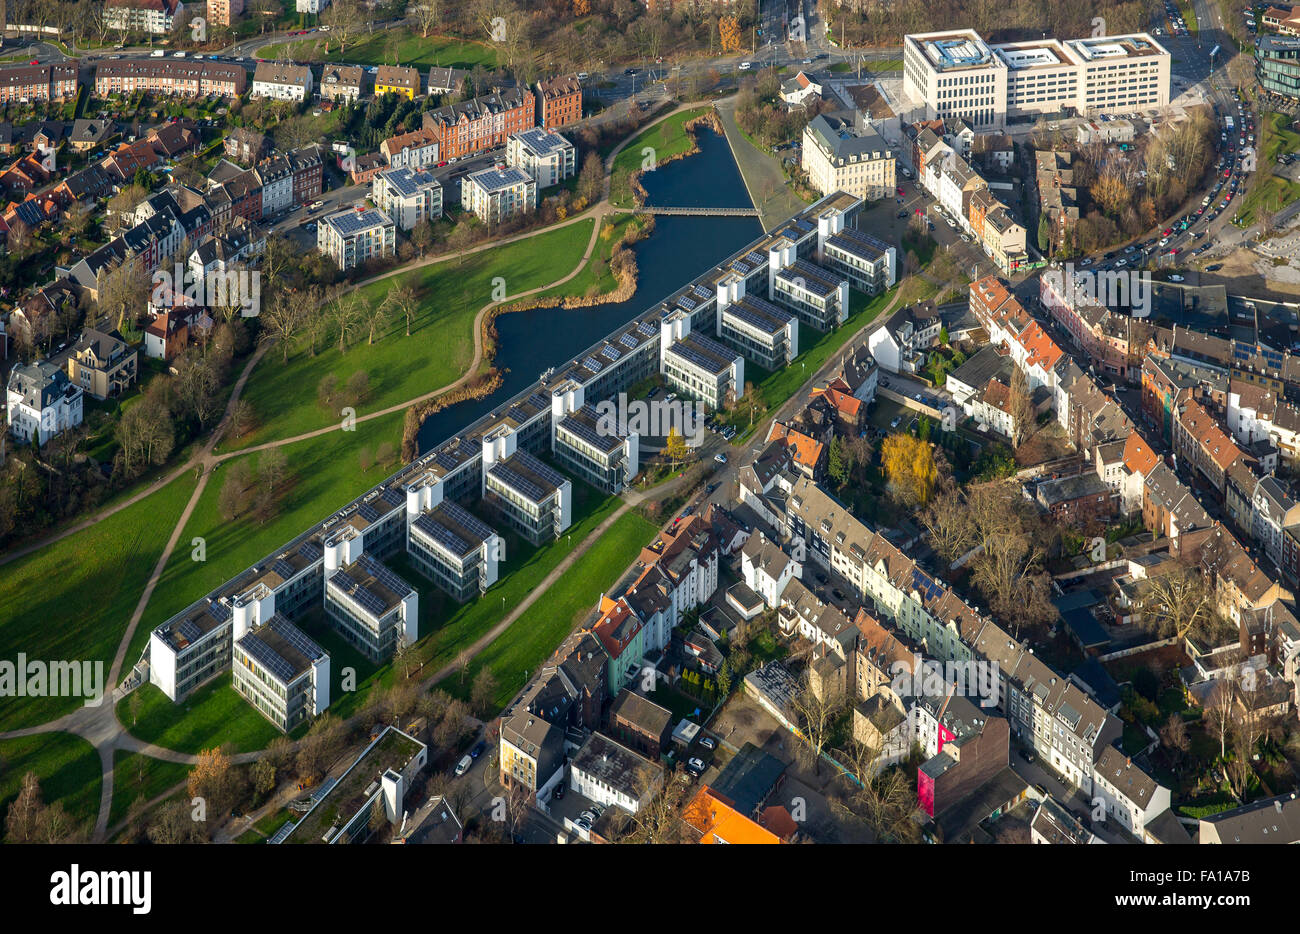 Aerial view, Rheinelbe Science Park, a project of the International Building Exhibition Emscher Park, solar power - Stock Image